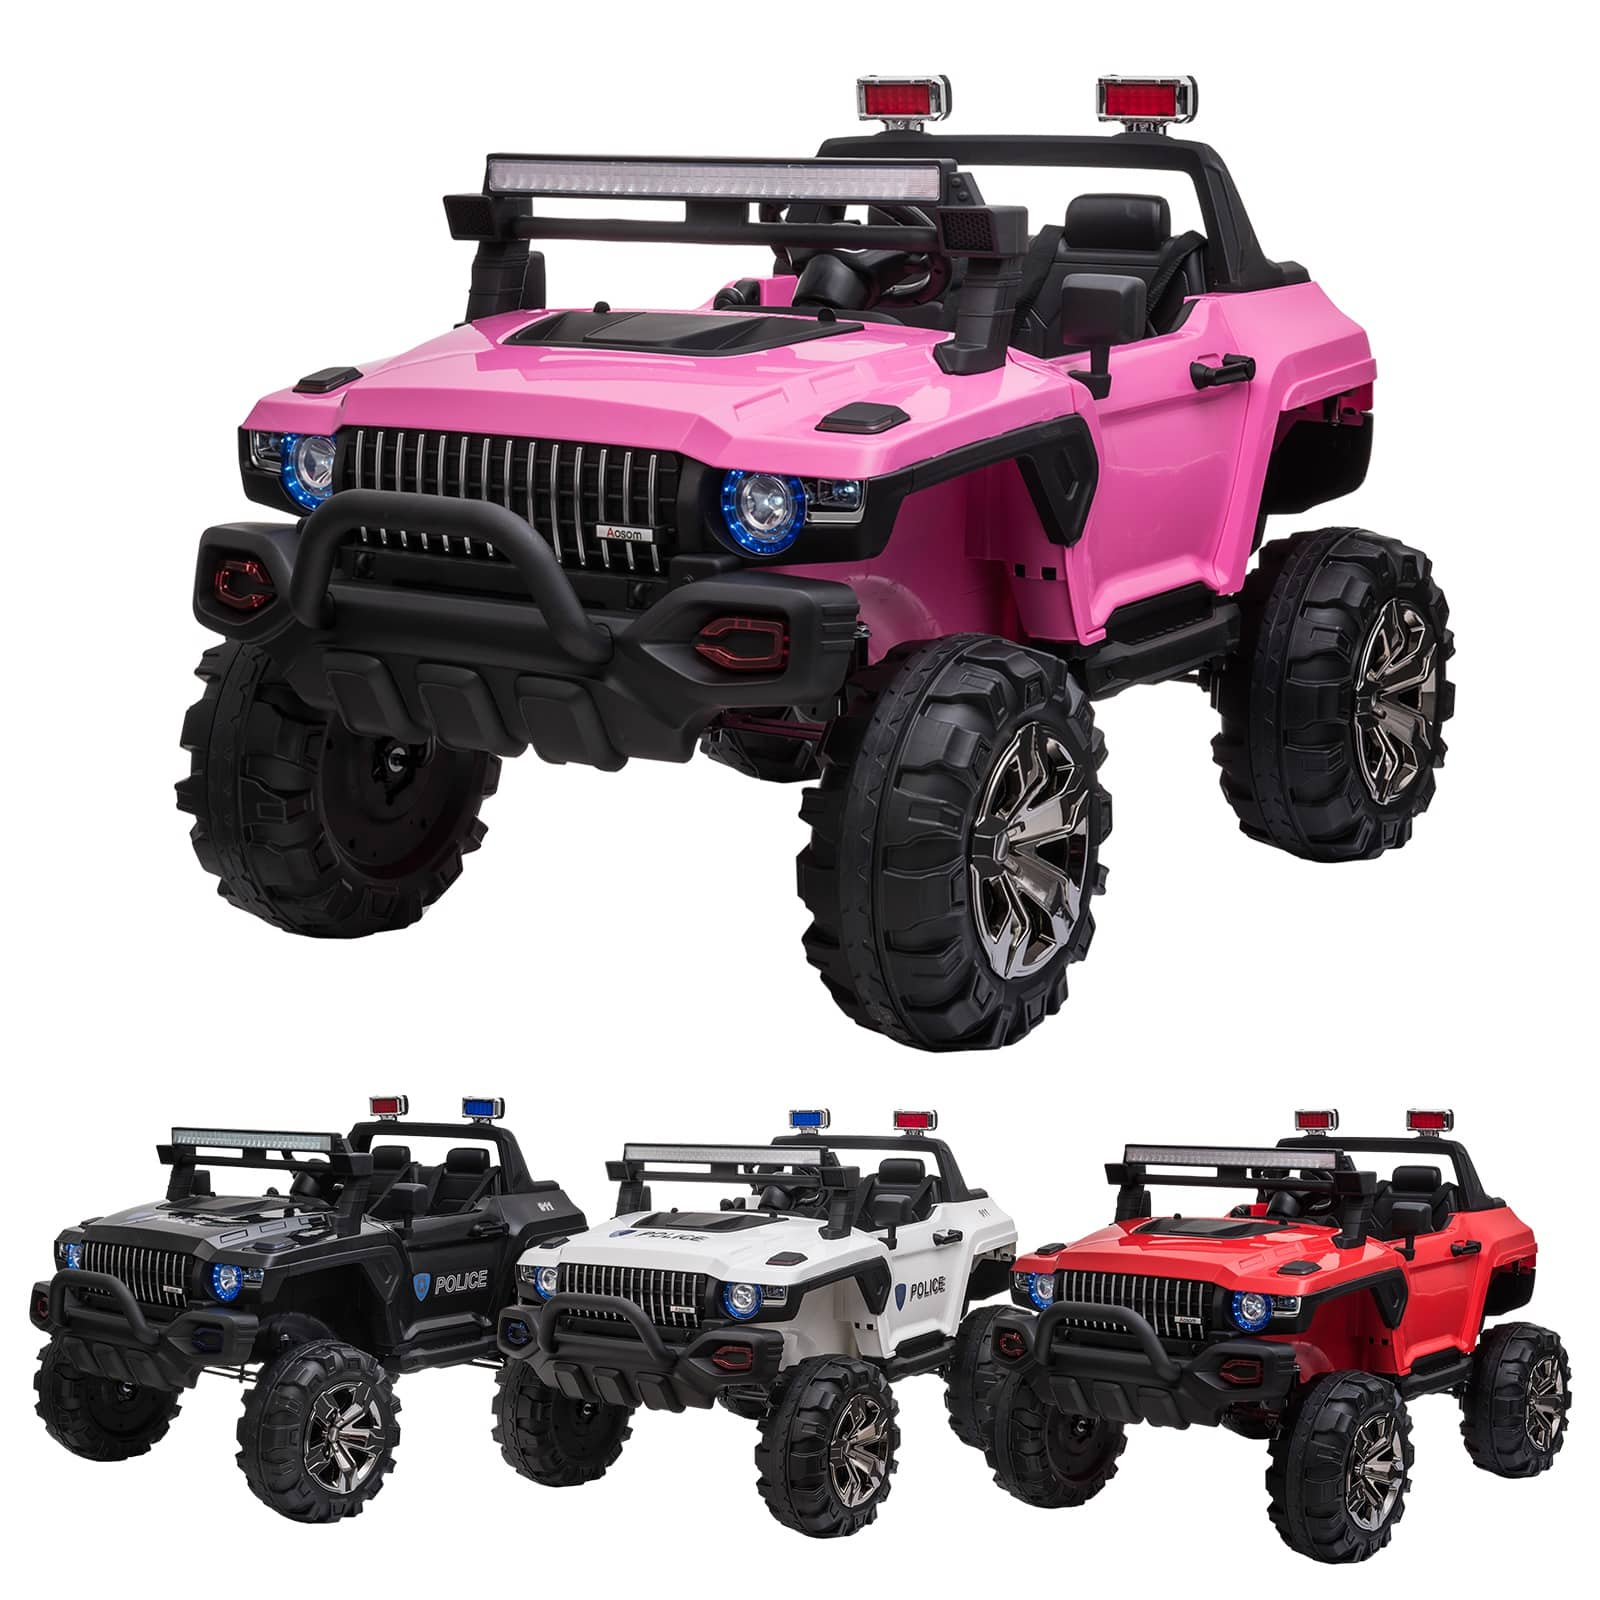 Aosom 12V 2- Seater Ride On Car SUV Truck - $249.99 + Free Shipping